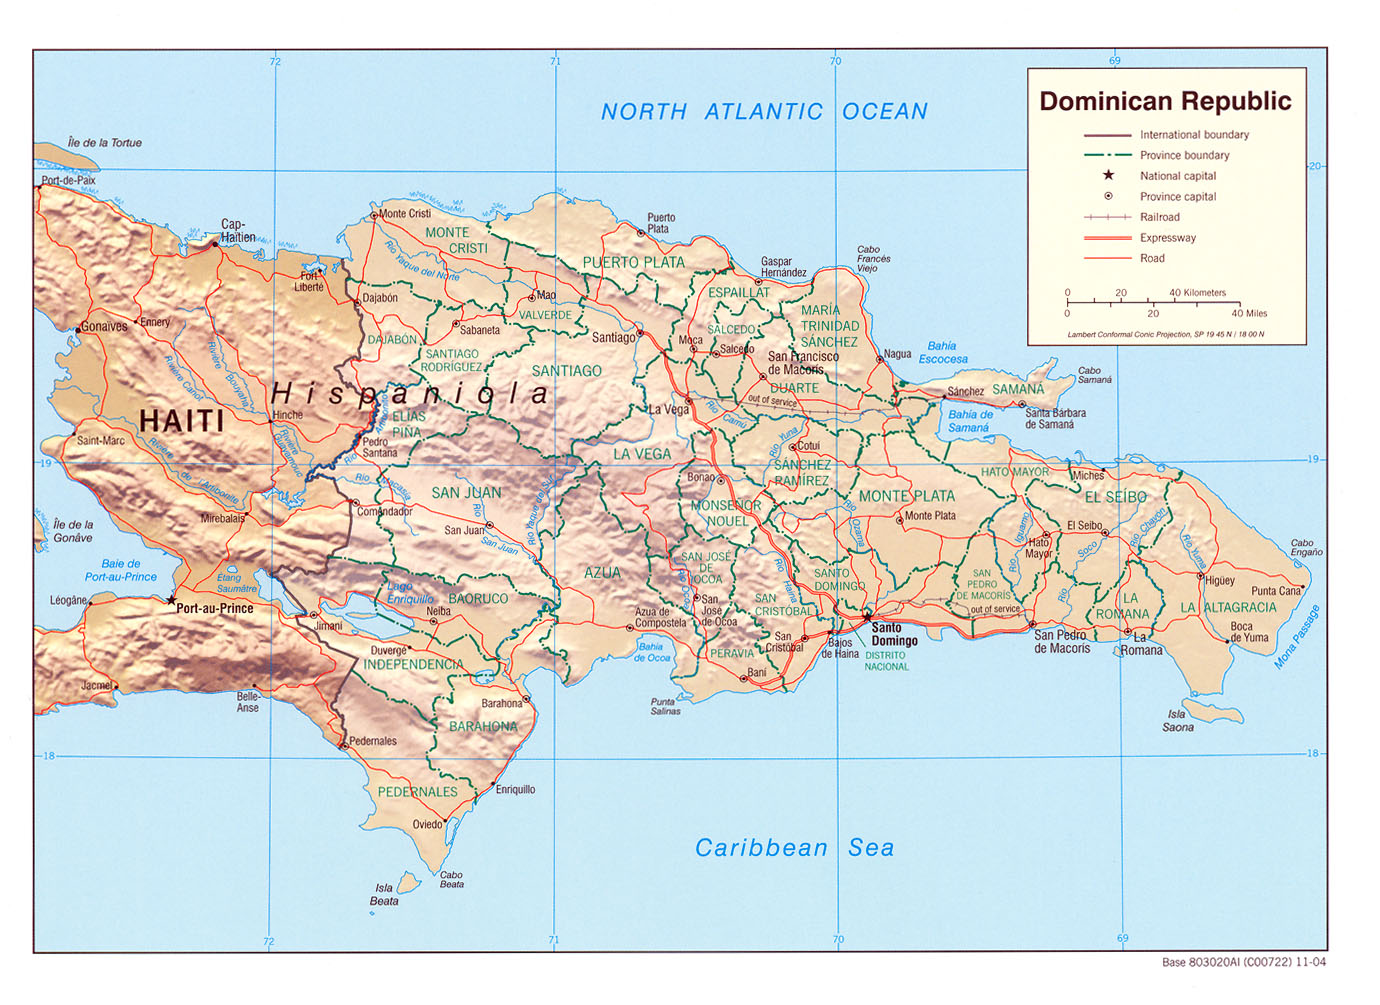 Mapa Relieve Sombreado de República Dominicana